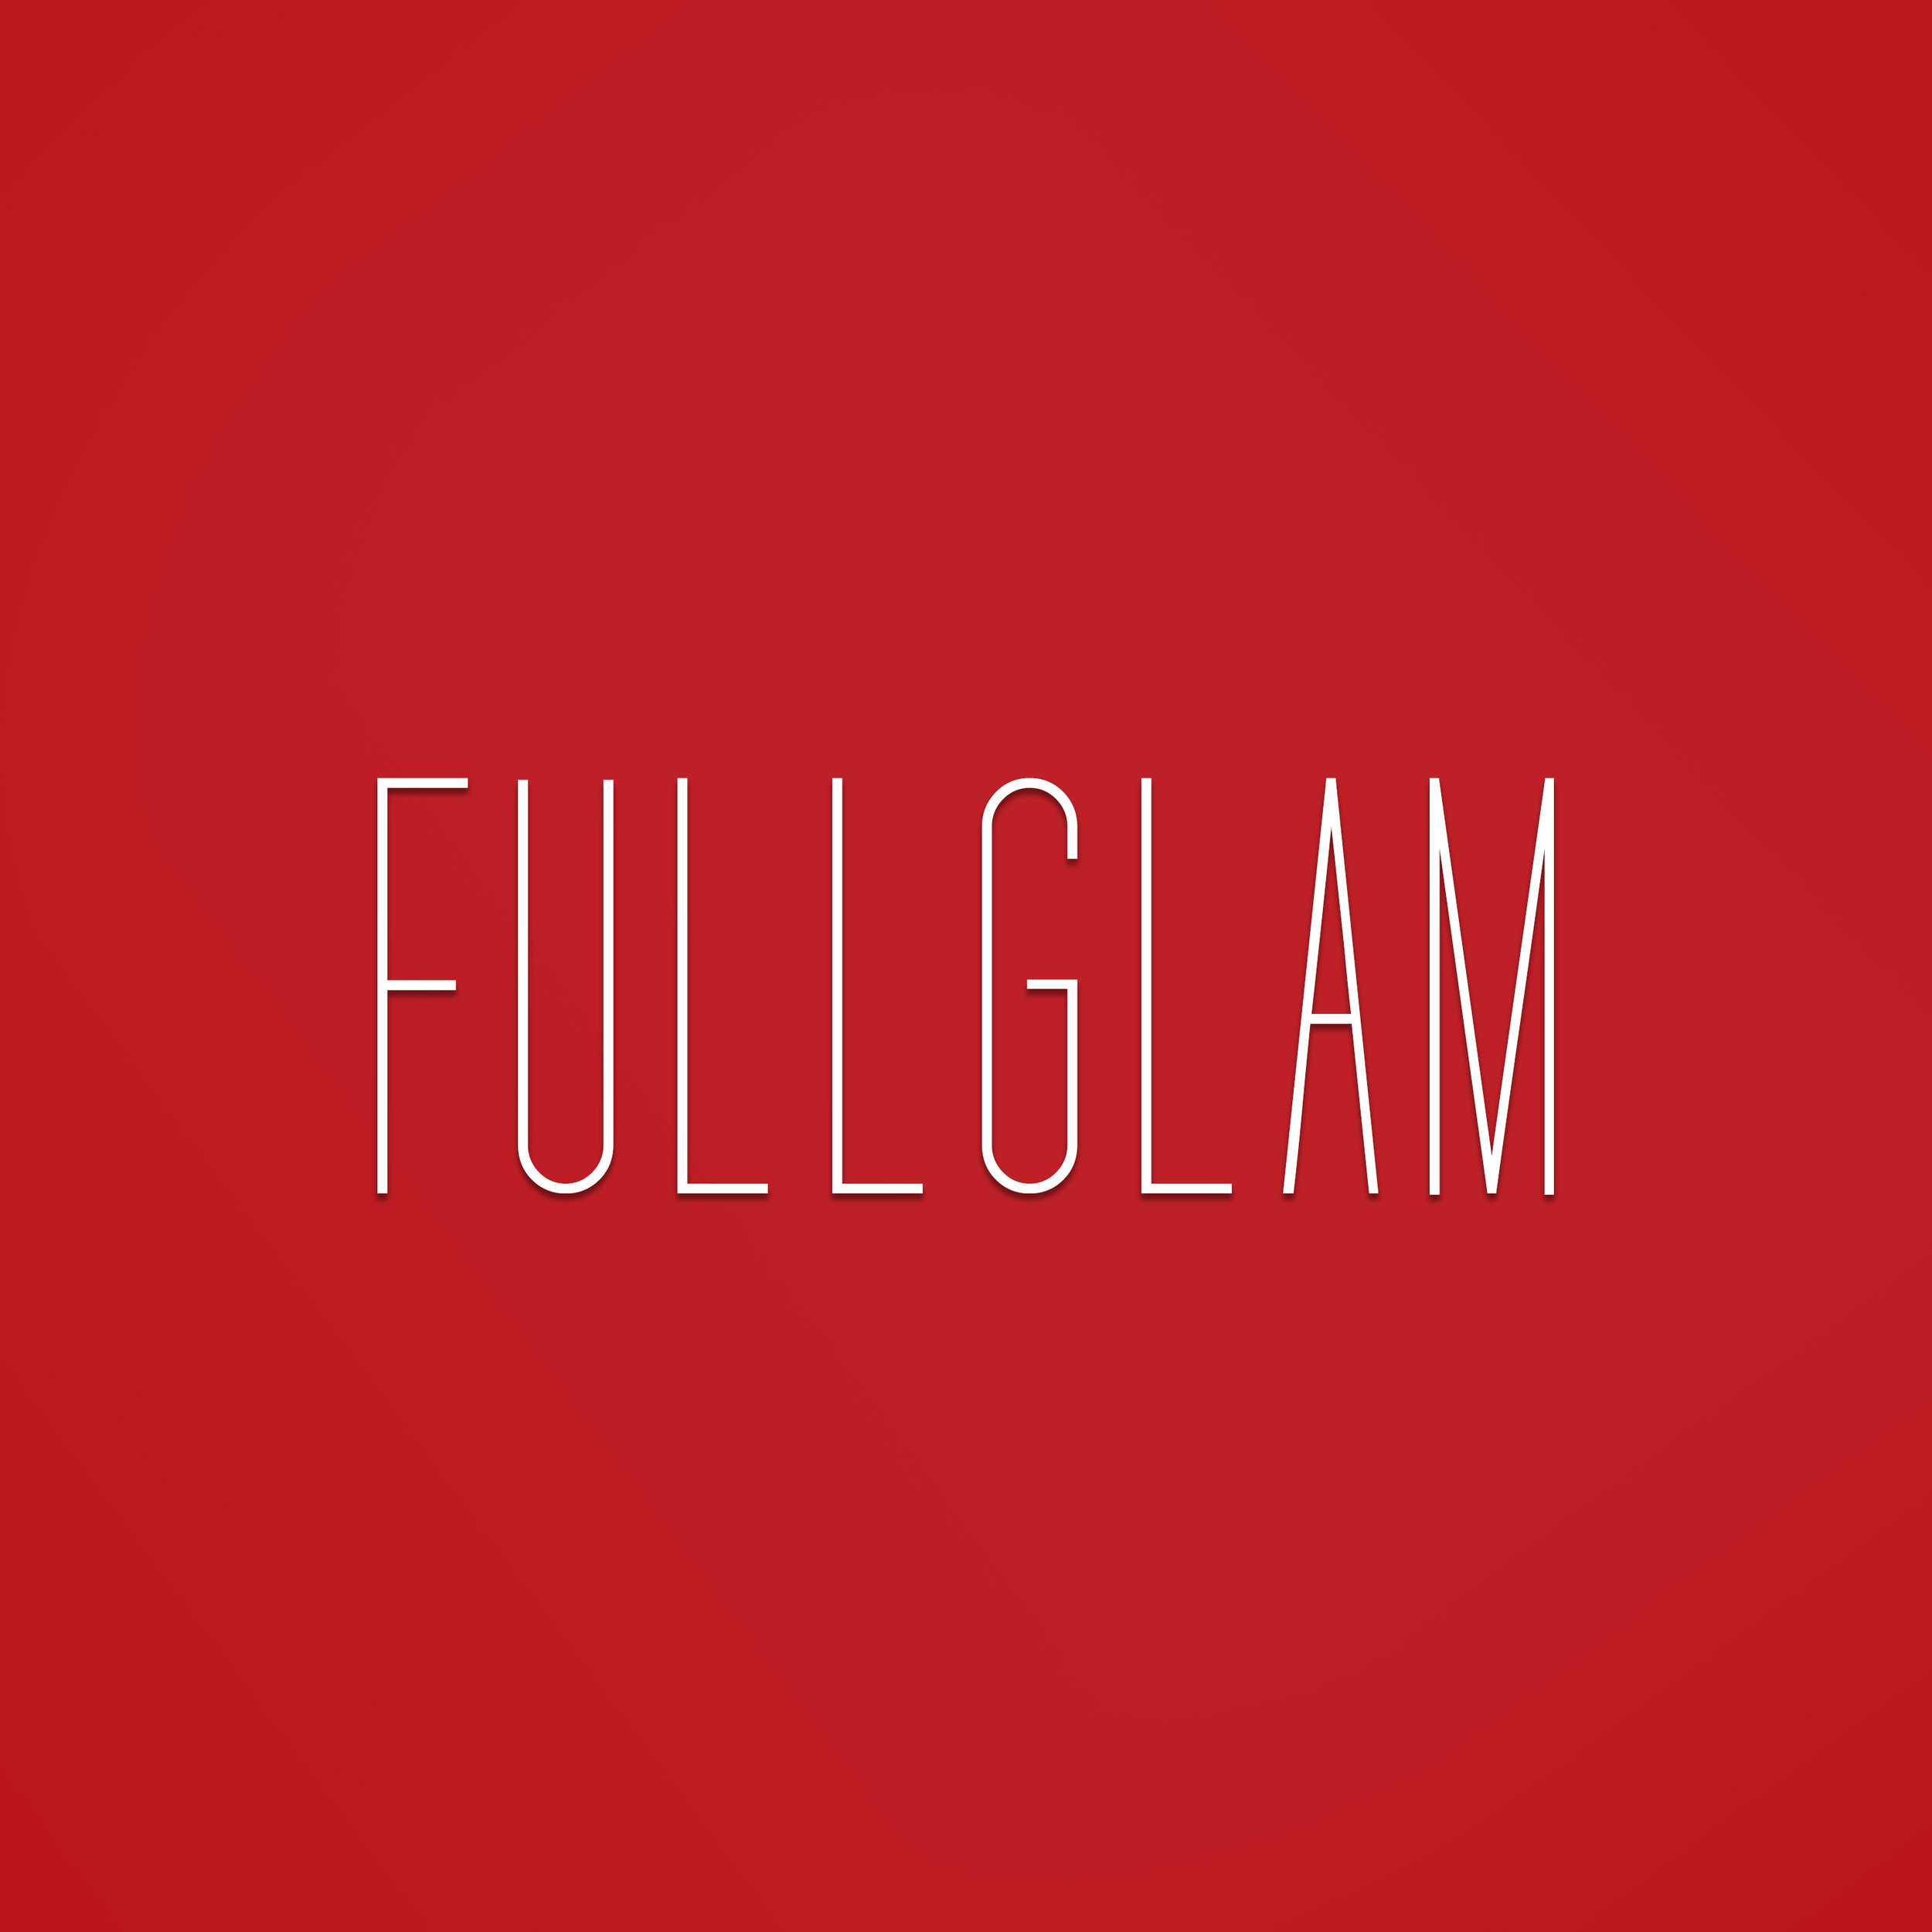 fullglam_large_square.jpg